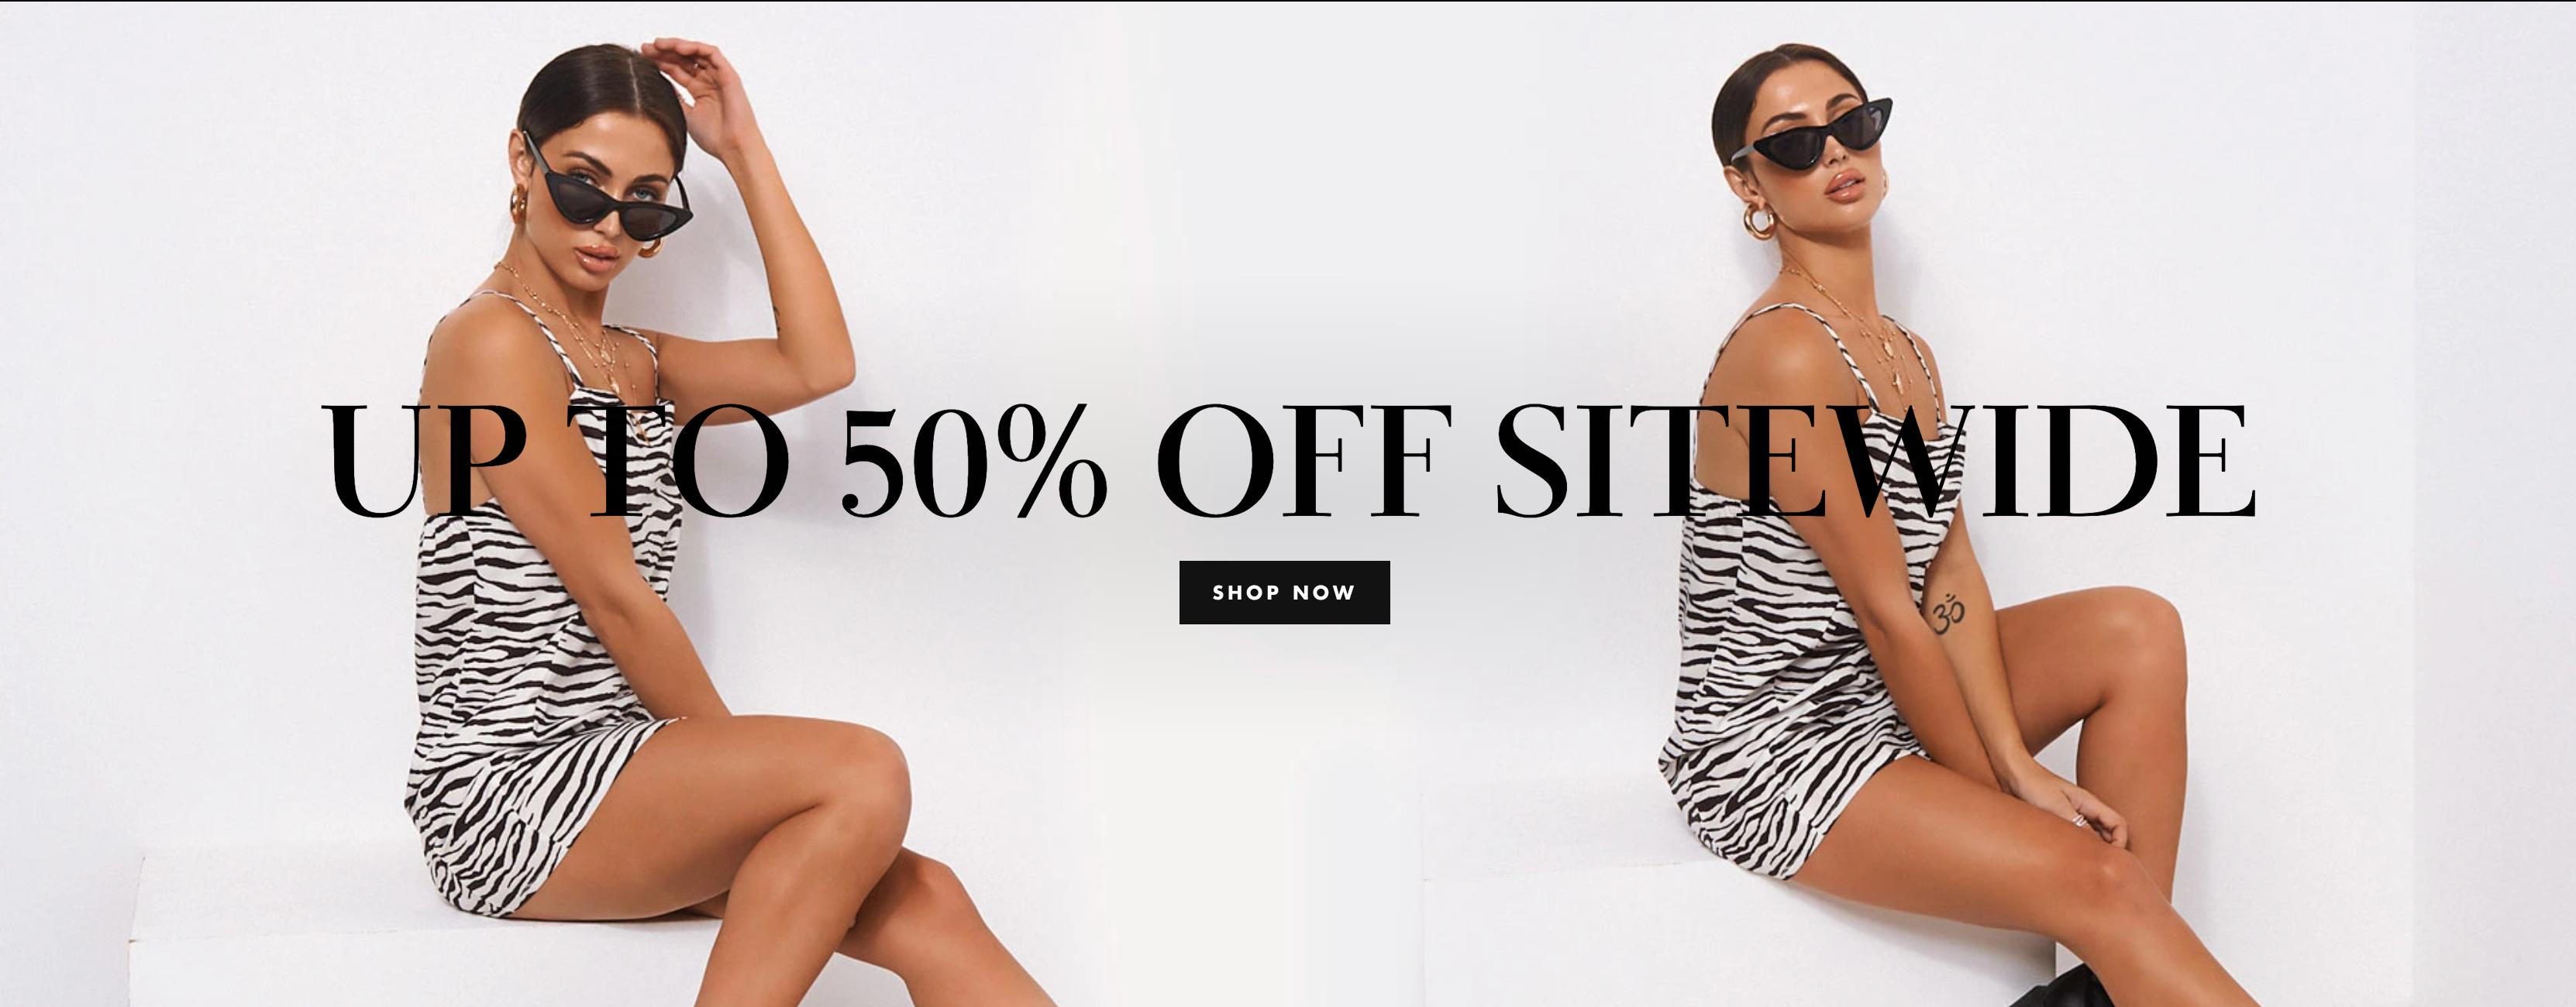 The Fashion Bible: Sale up to 50% off women's fashion dresses & clothing